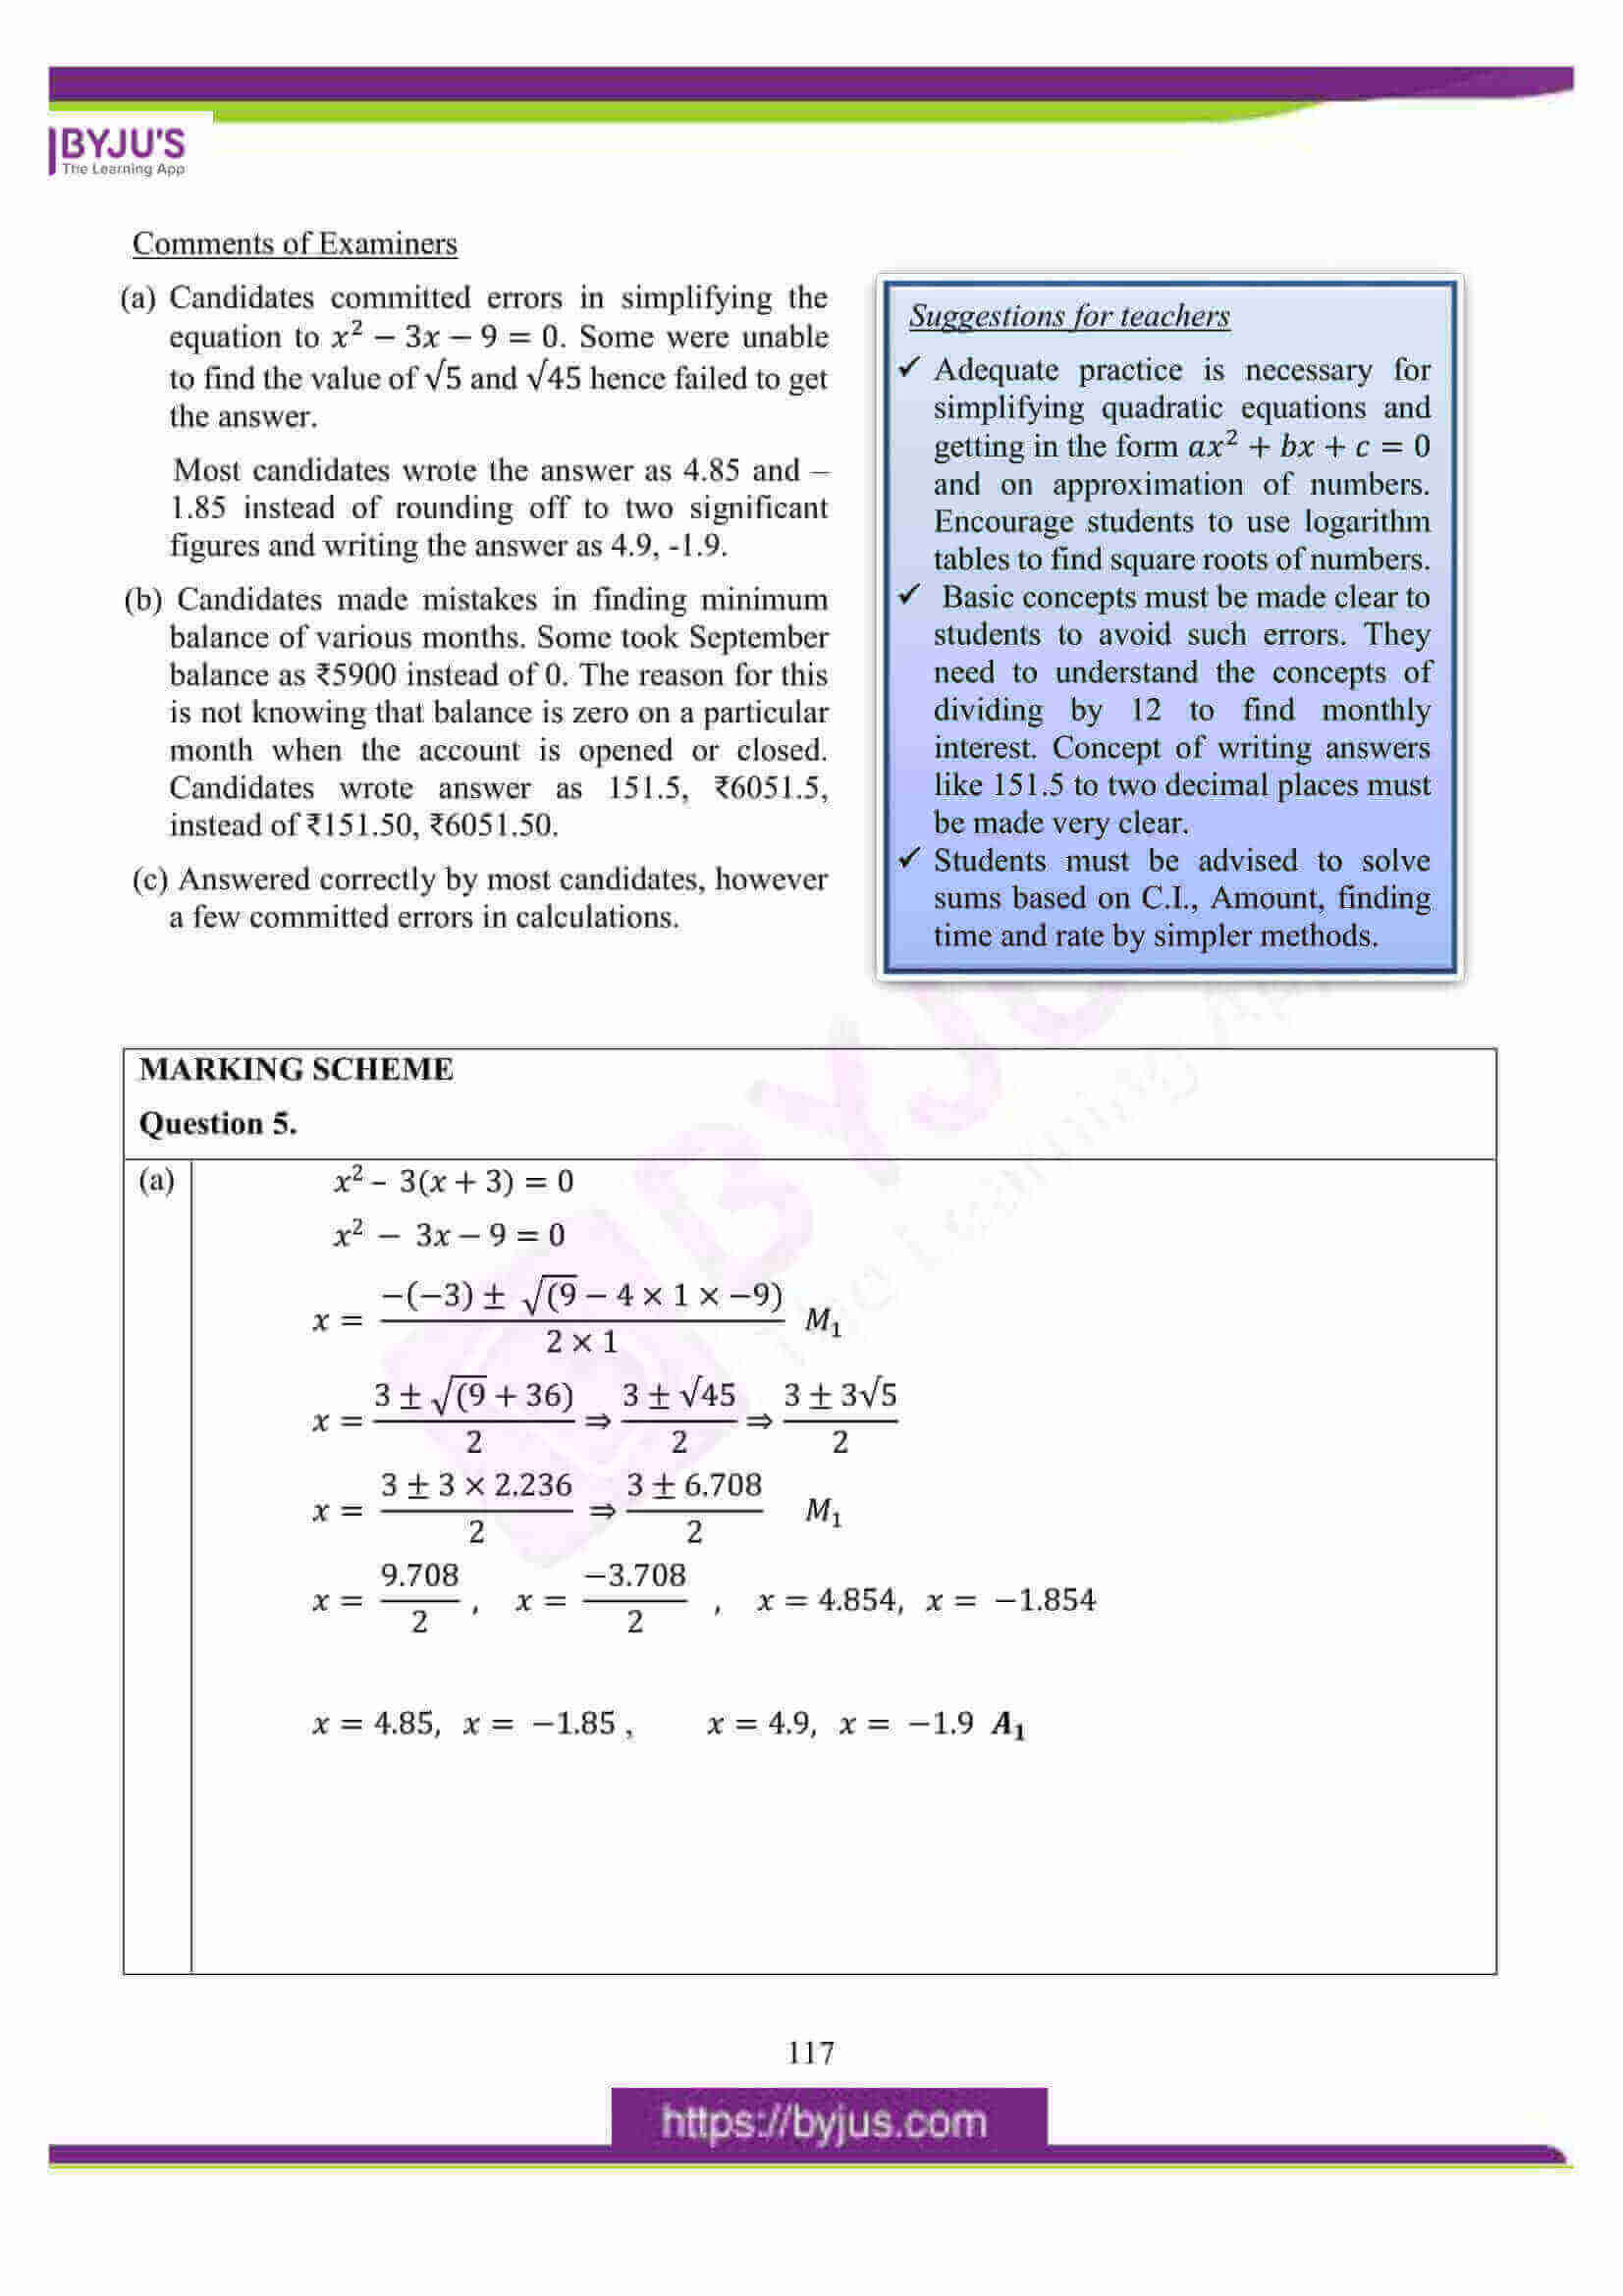 icse class 10 maths question paper solution 2016 11